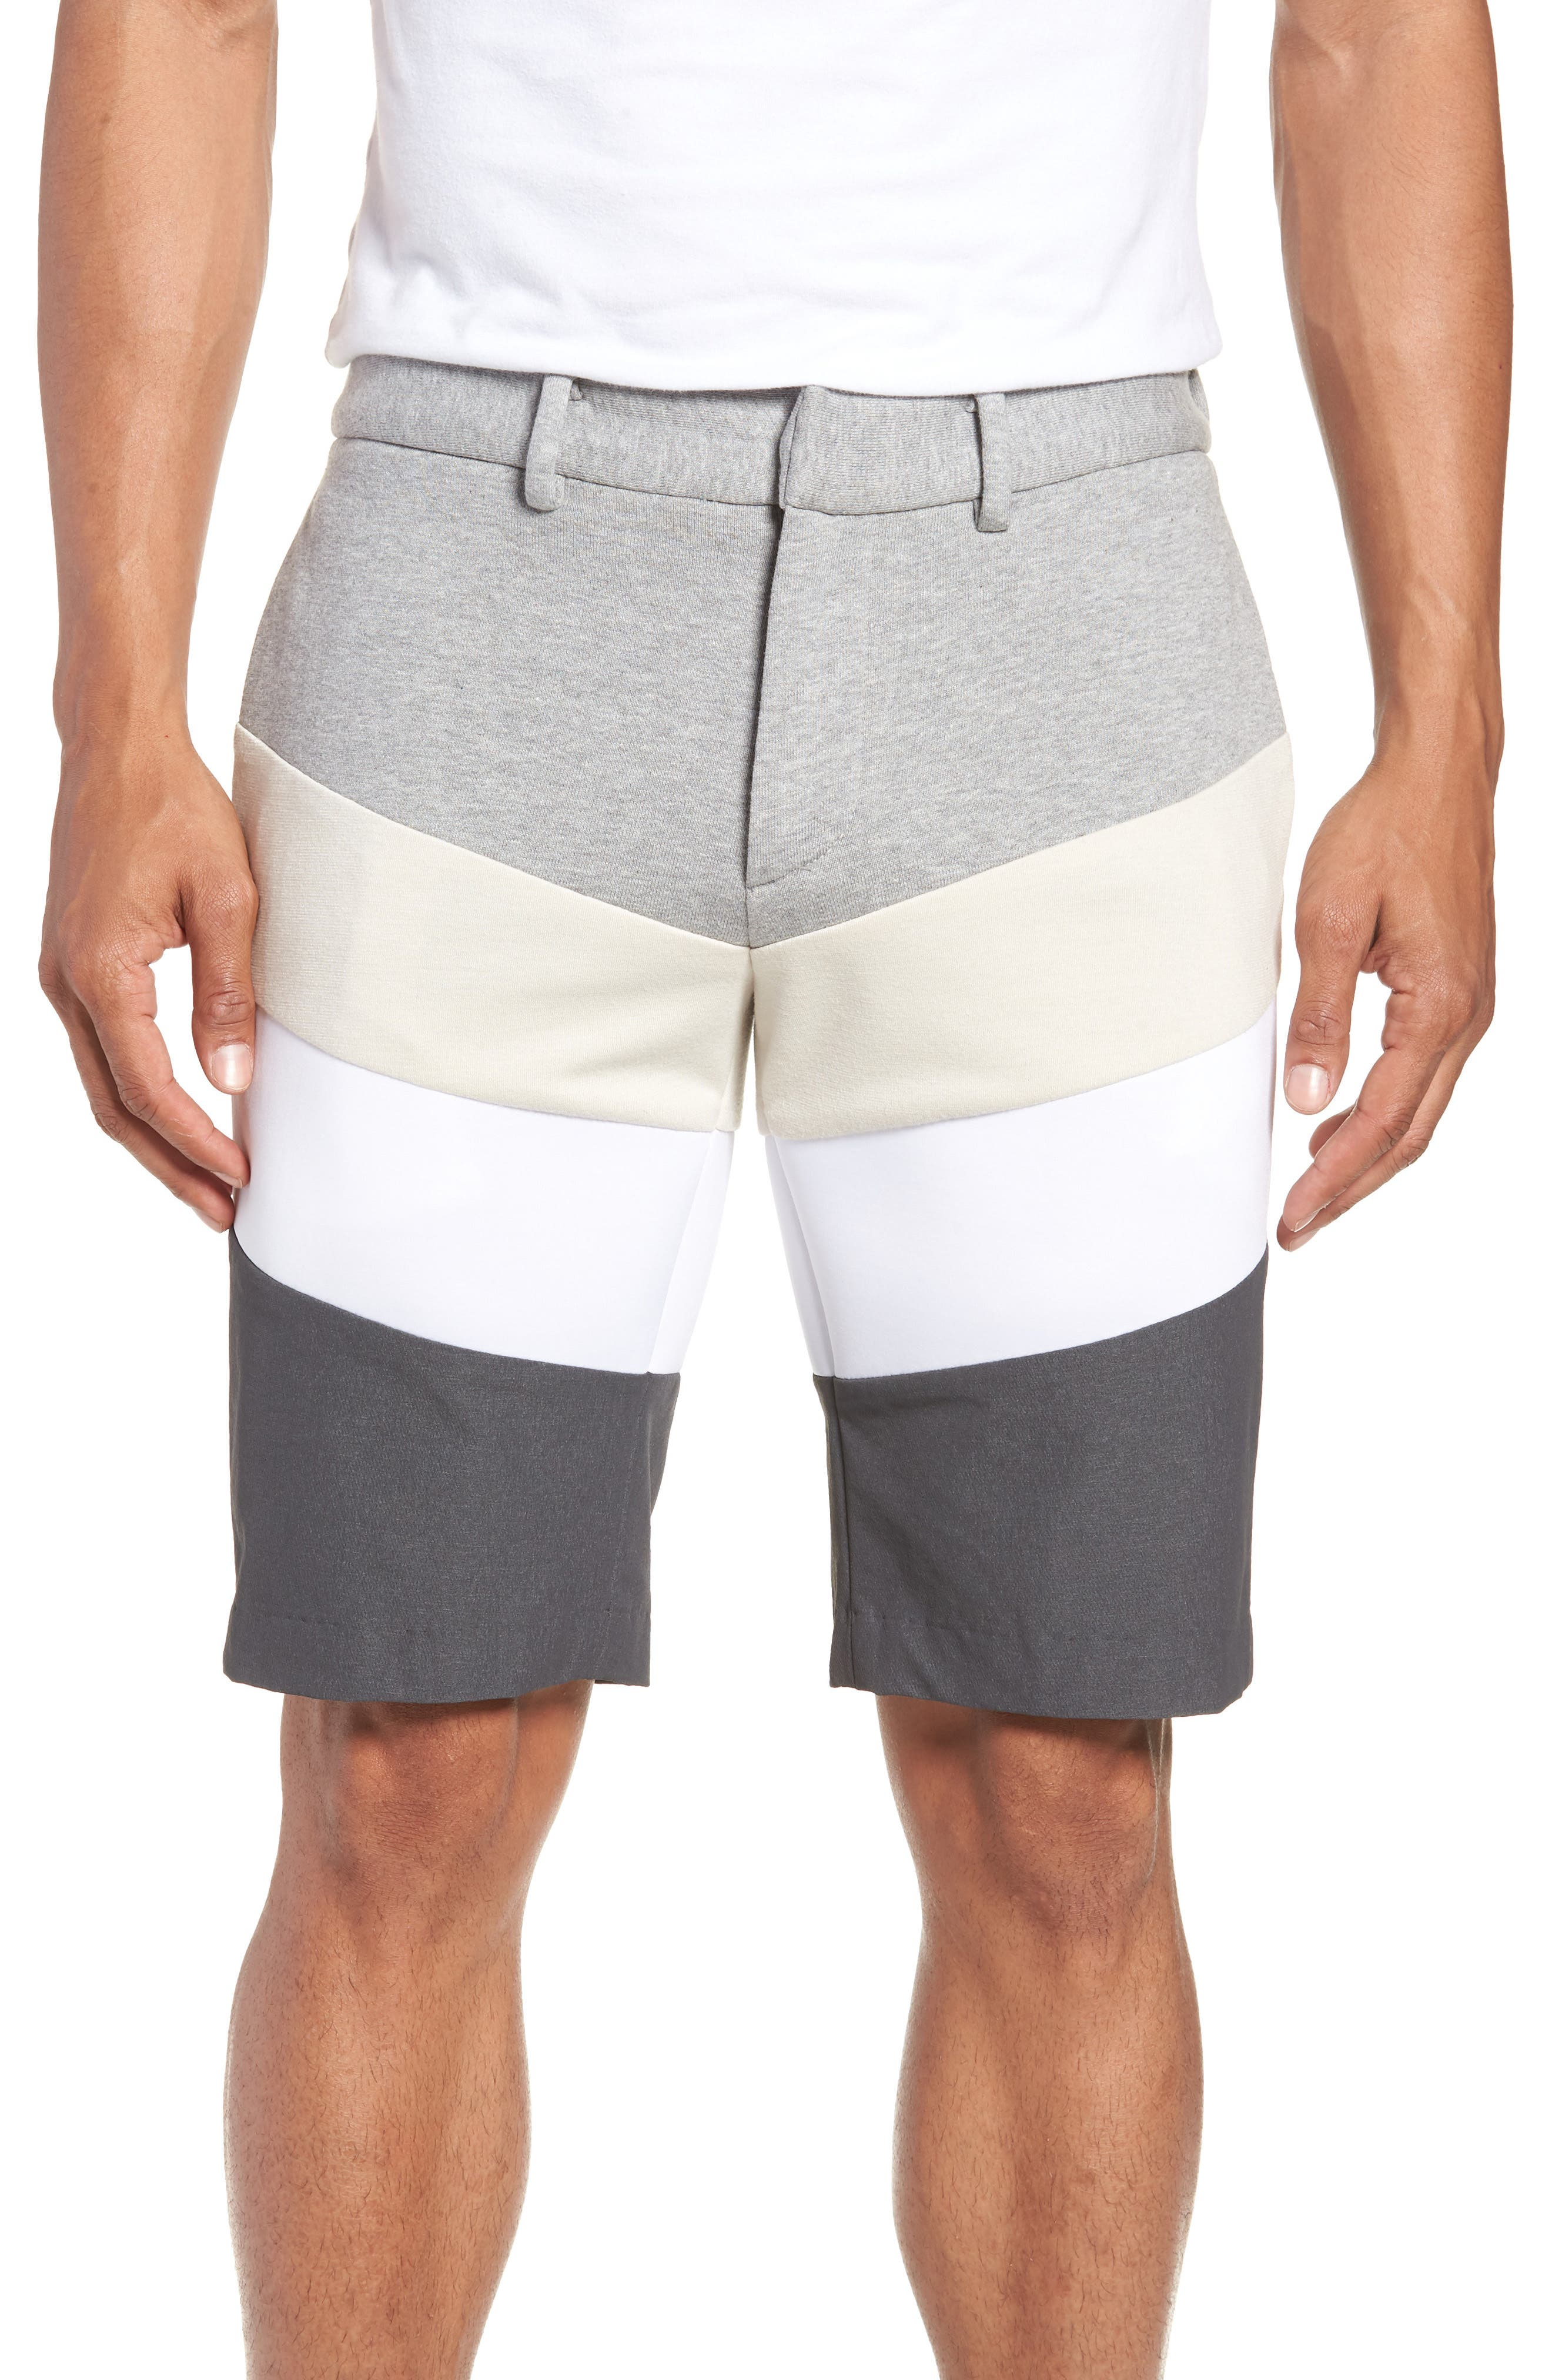 Chevron Colorblock Shorts,                             Main thumbnail 1, color,                             HEATHER GREY